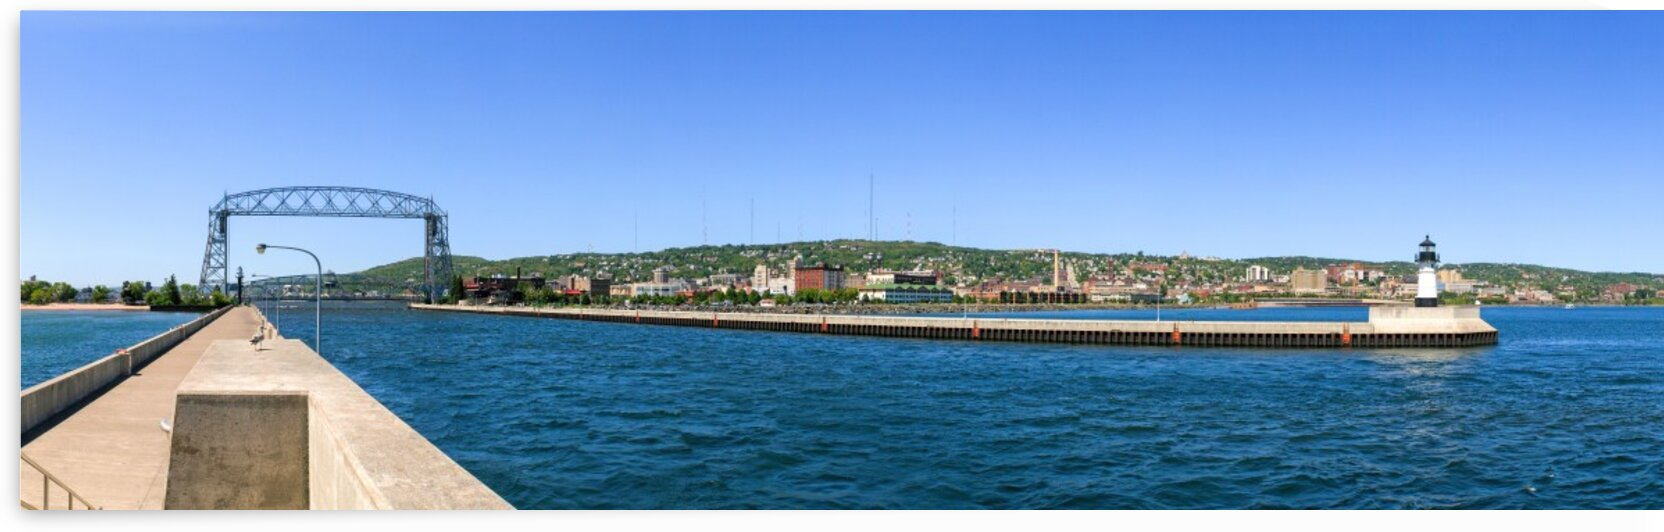 Duluth Aerial Lift Bridge Pier Clear Sky Panoramic Photo by Jonathan Kozub